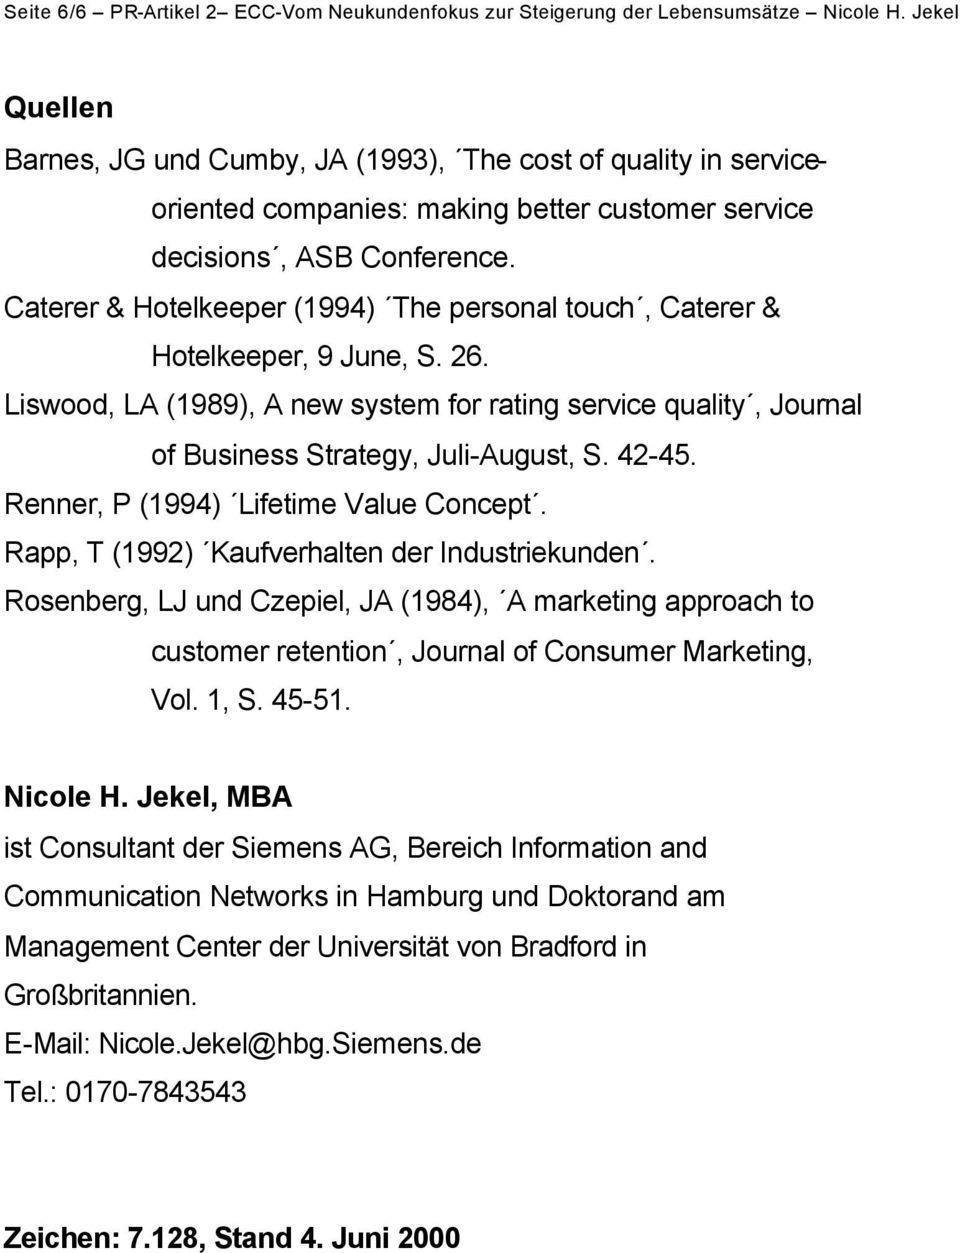 Caterer & Hotelkeeper (1994) The personal touch, Caterer & Hotelkeeper, 9 June, S. 26. Liswood, LA (1989), A new system for rating service quality, Journal of Business Strategy, Juli-August, S. 42-45.